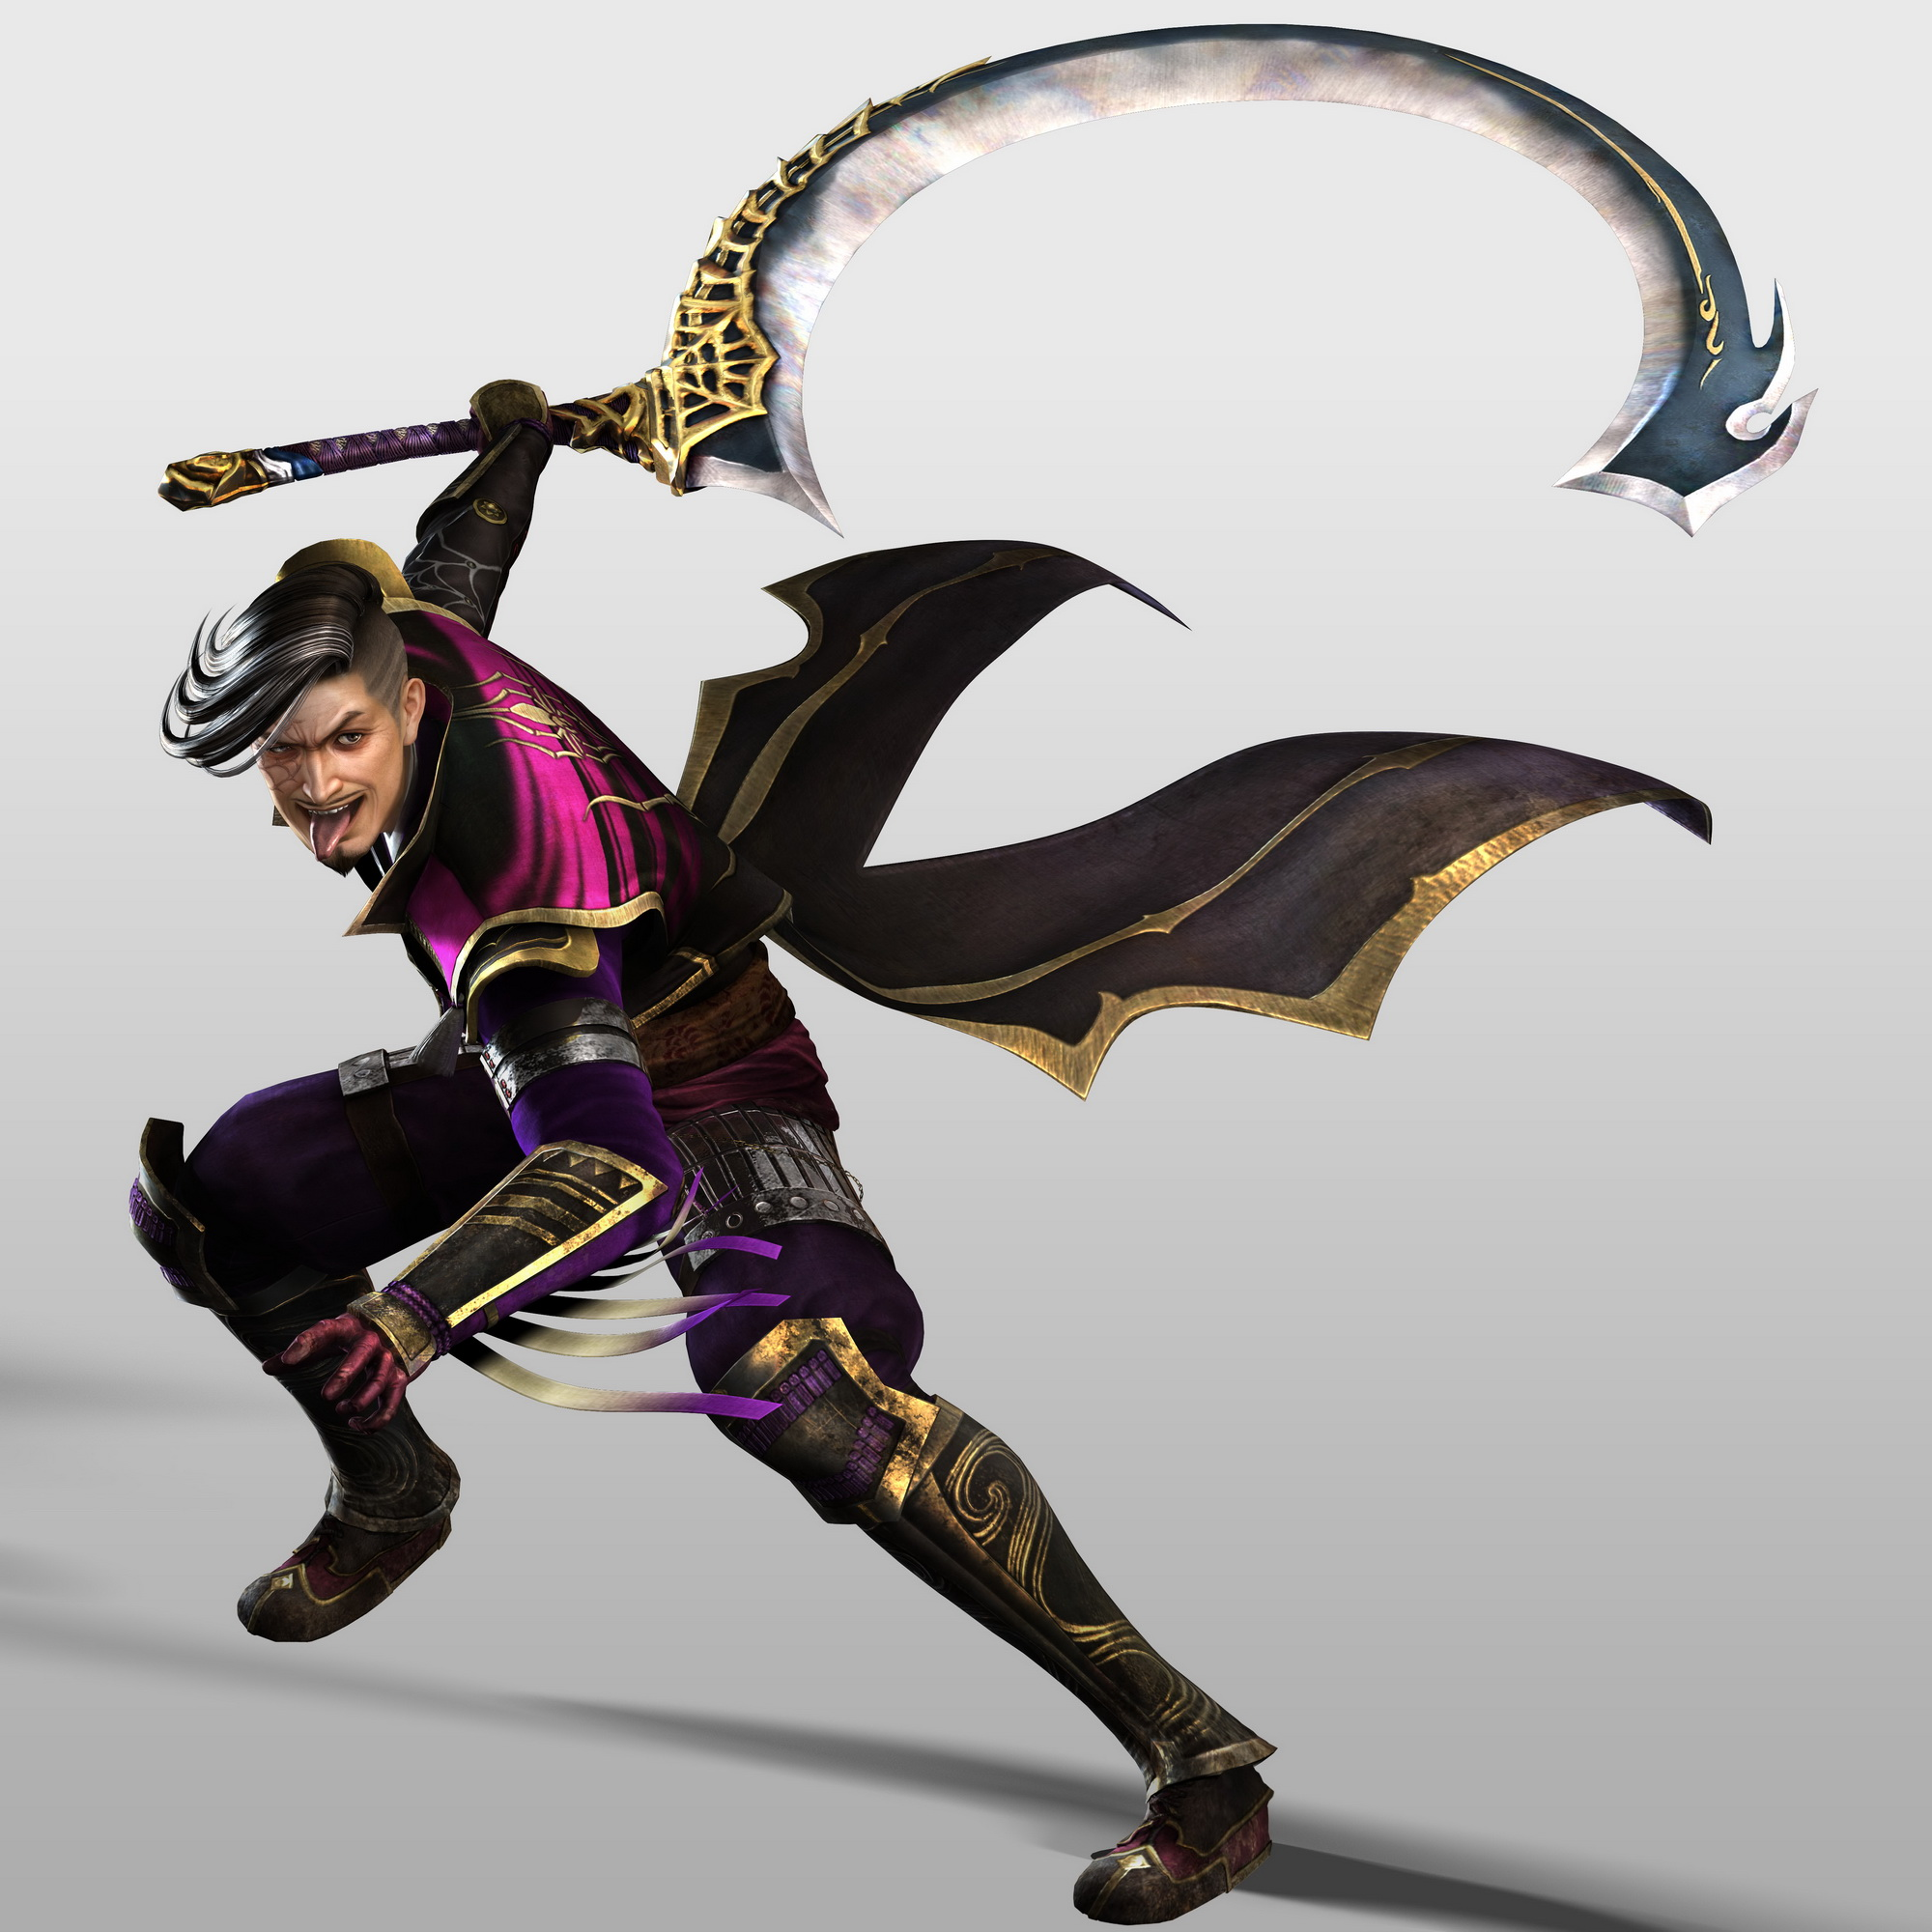 Best Characters In Warriors Orochi 4: Hisahide Matsunaga